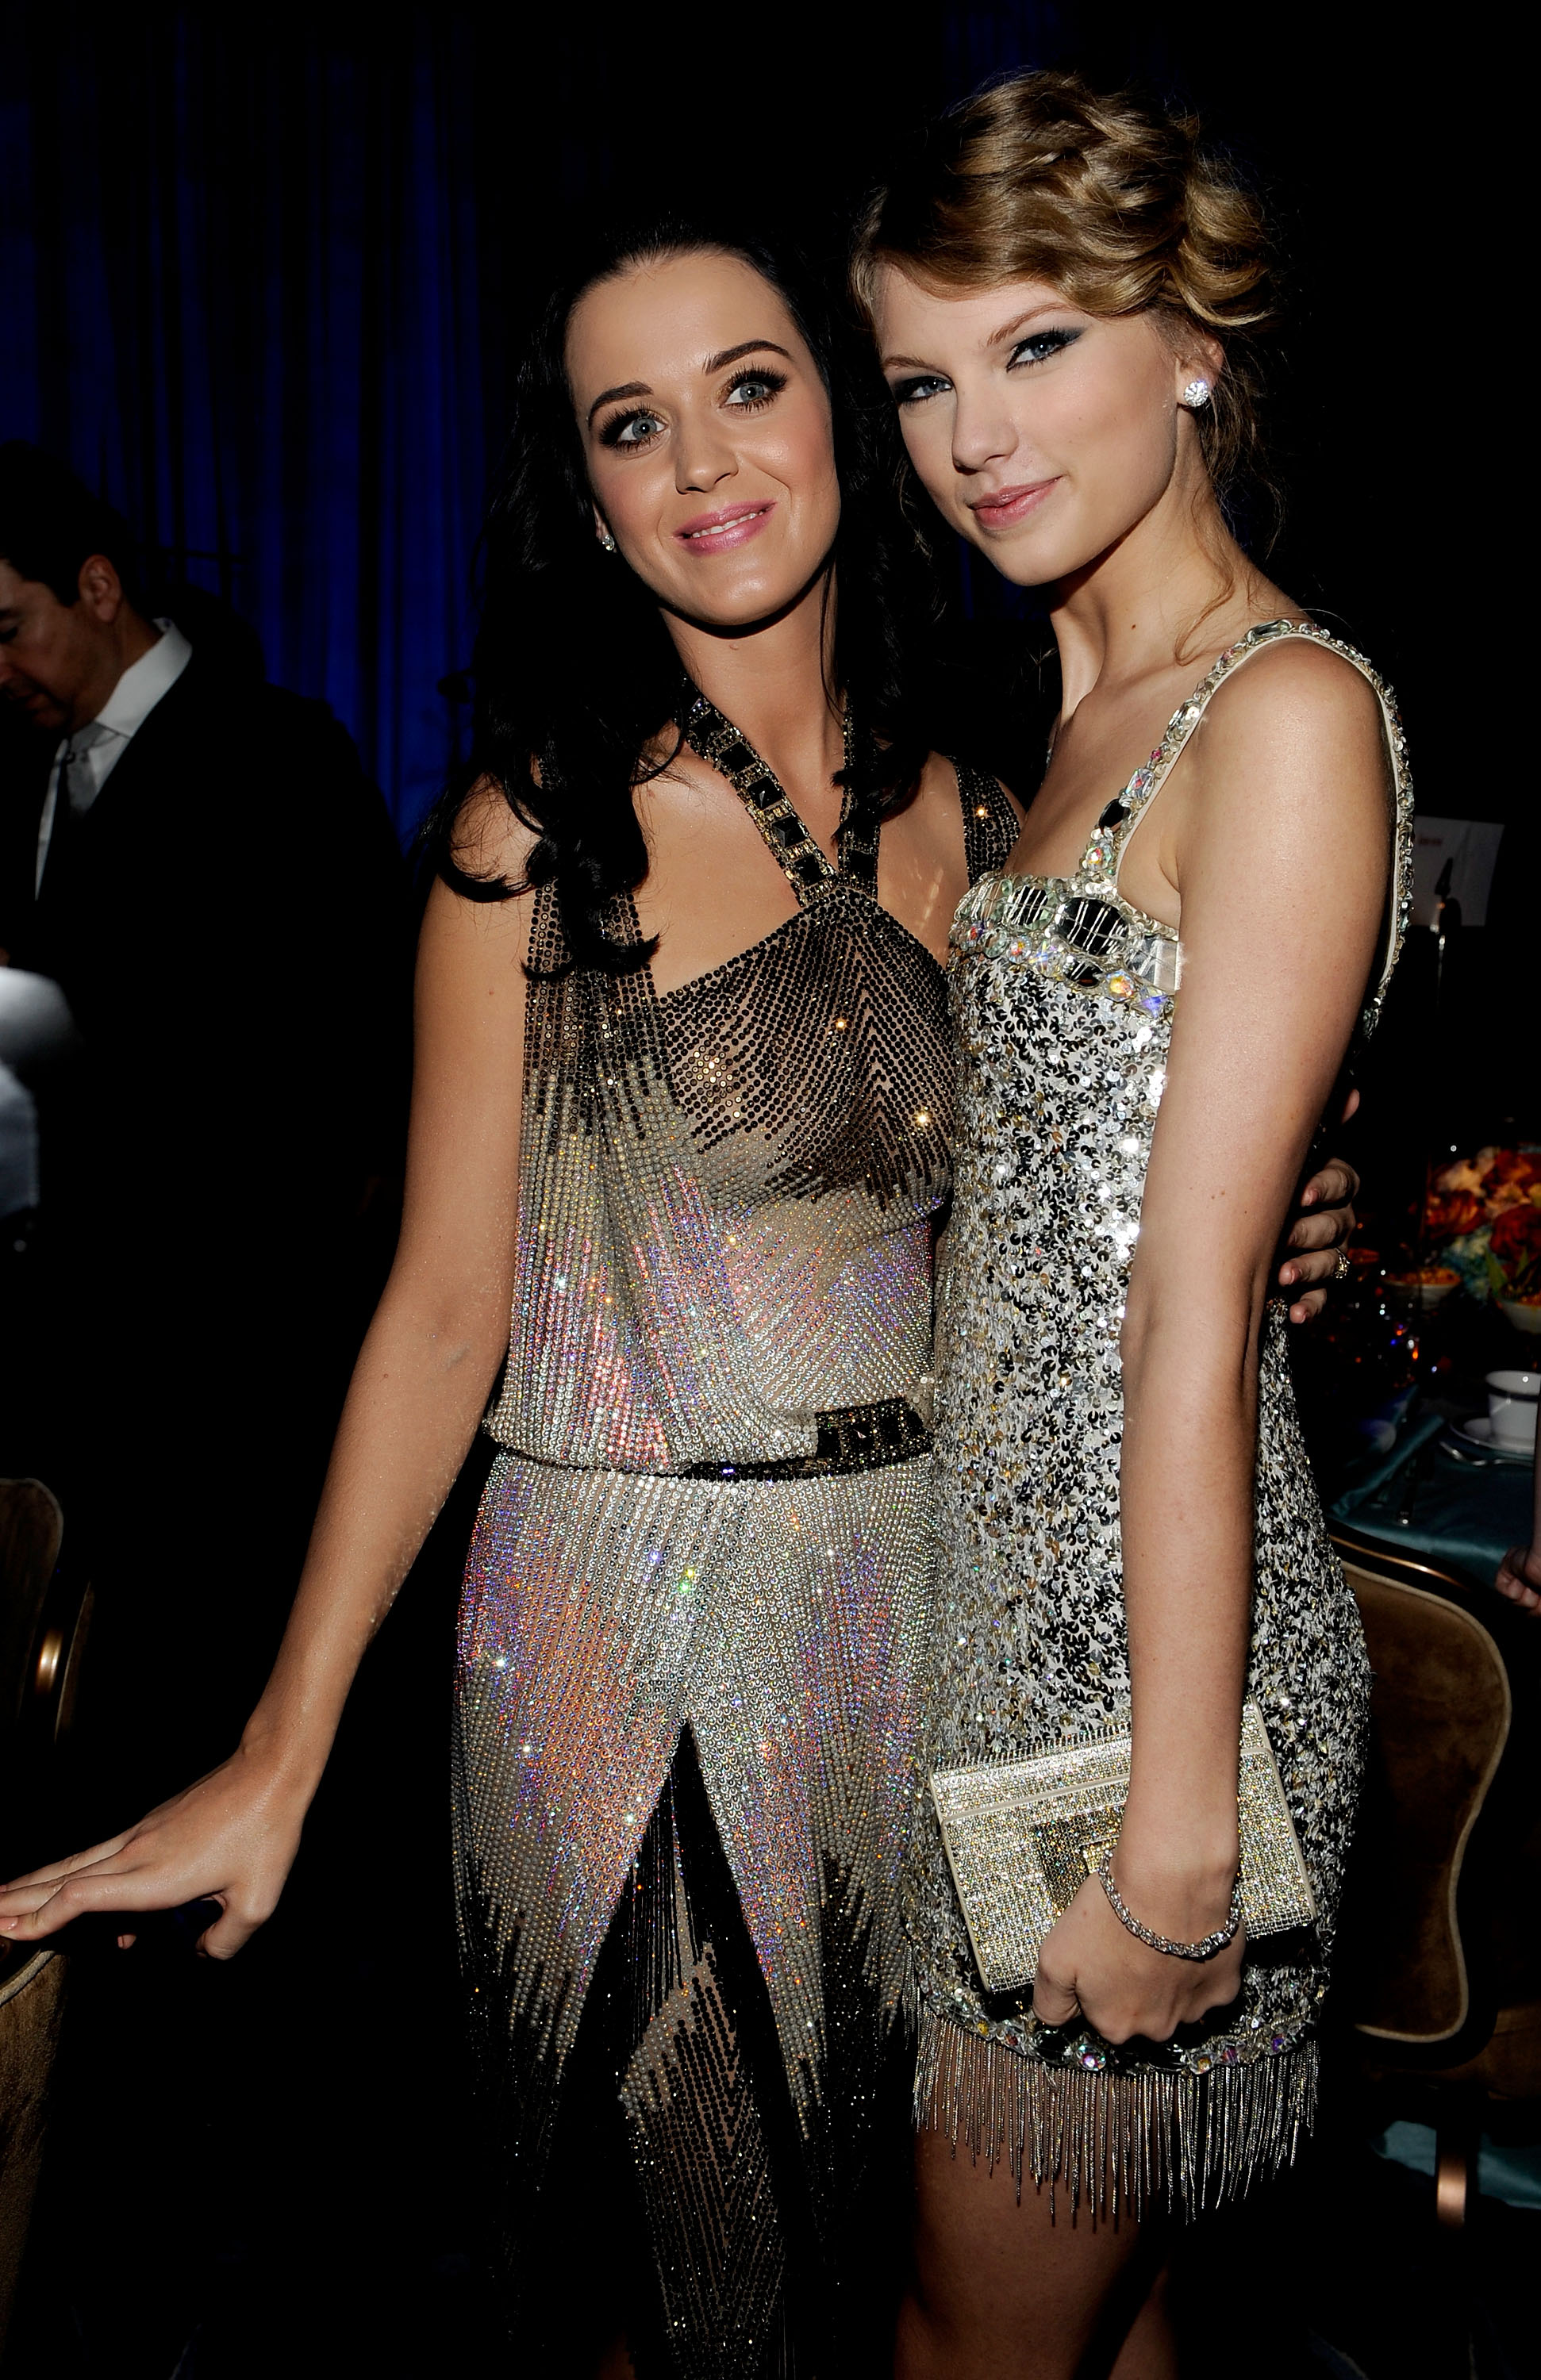 Taylor and Katy